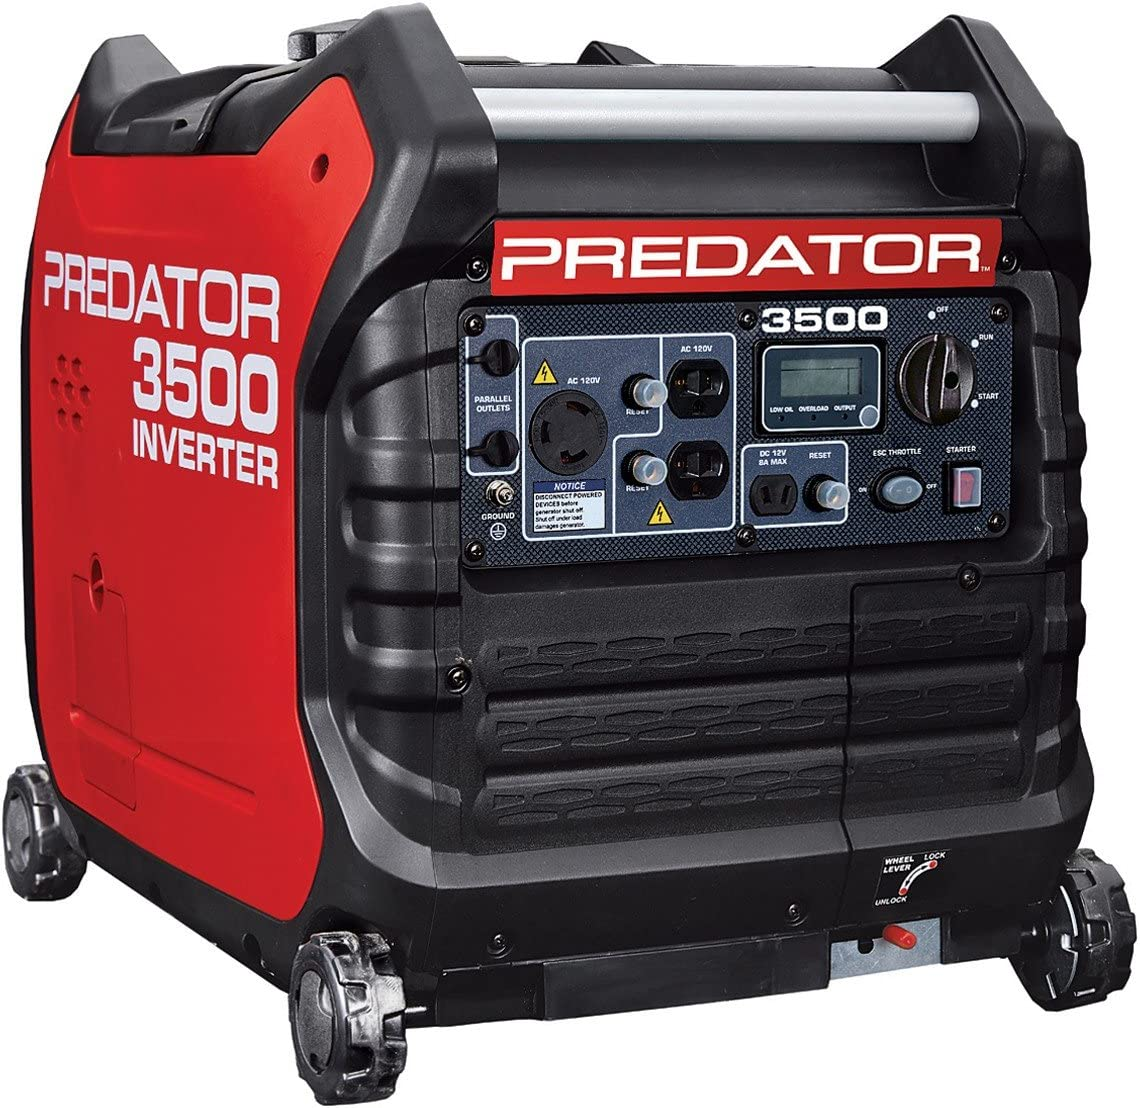 3500 Watt Super Quiet Inverter Generator